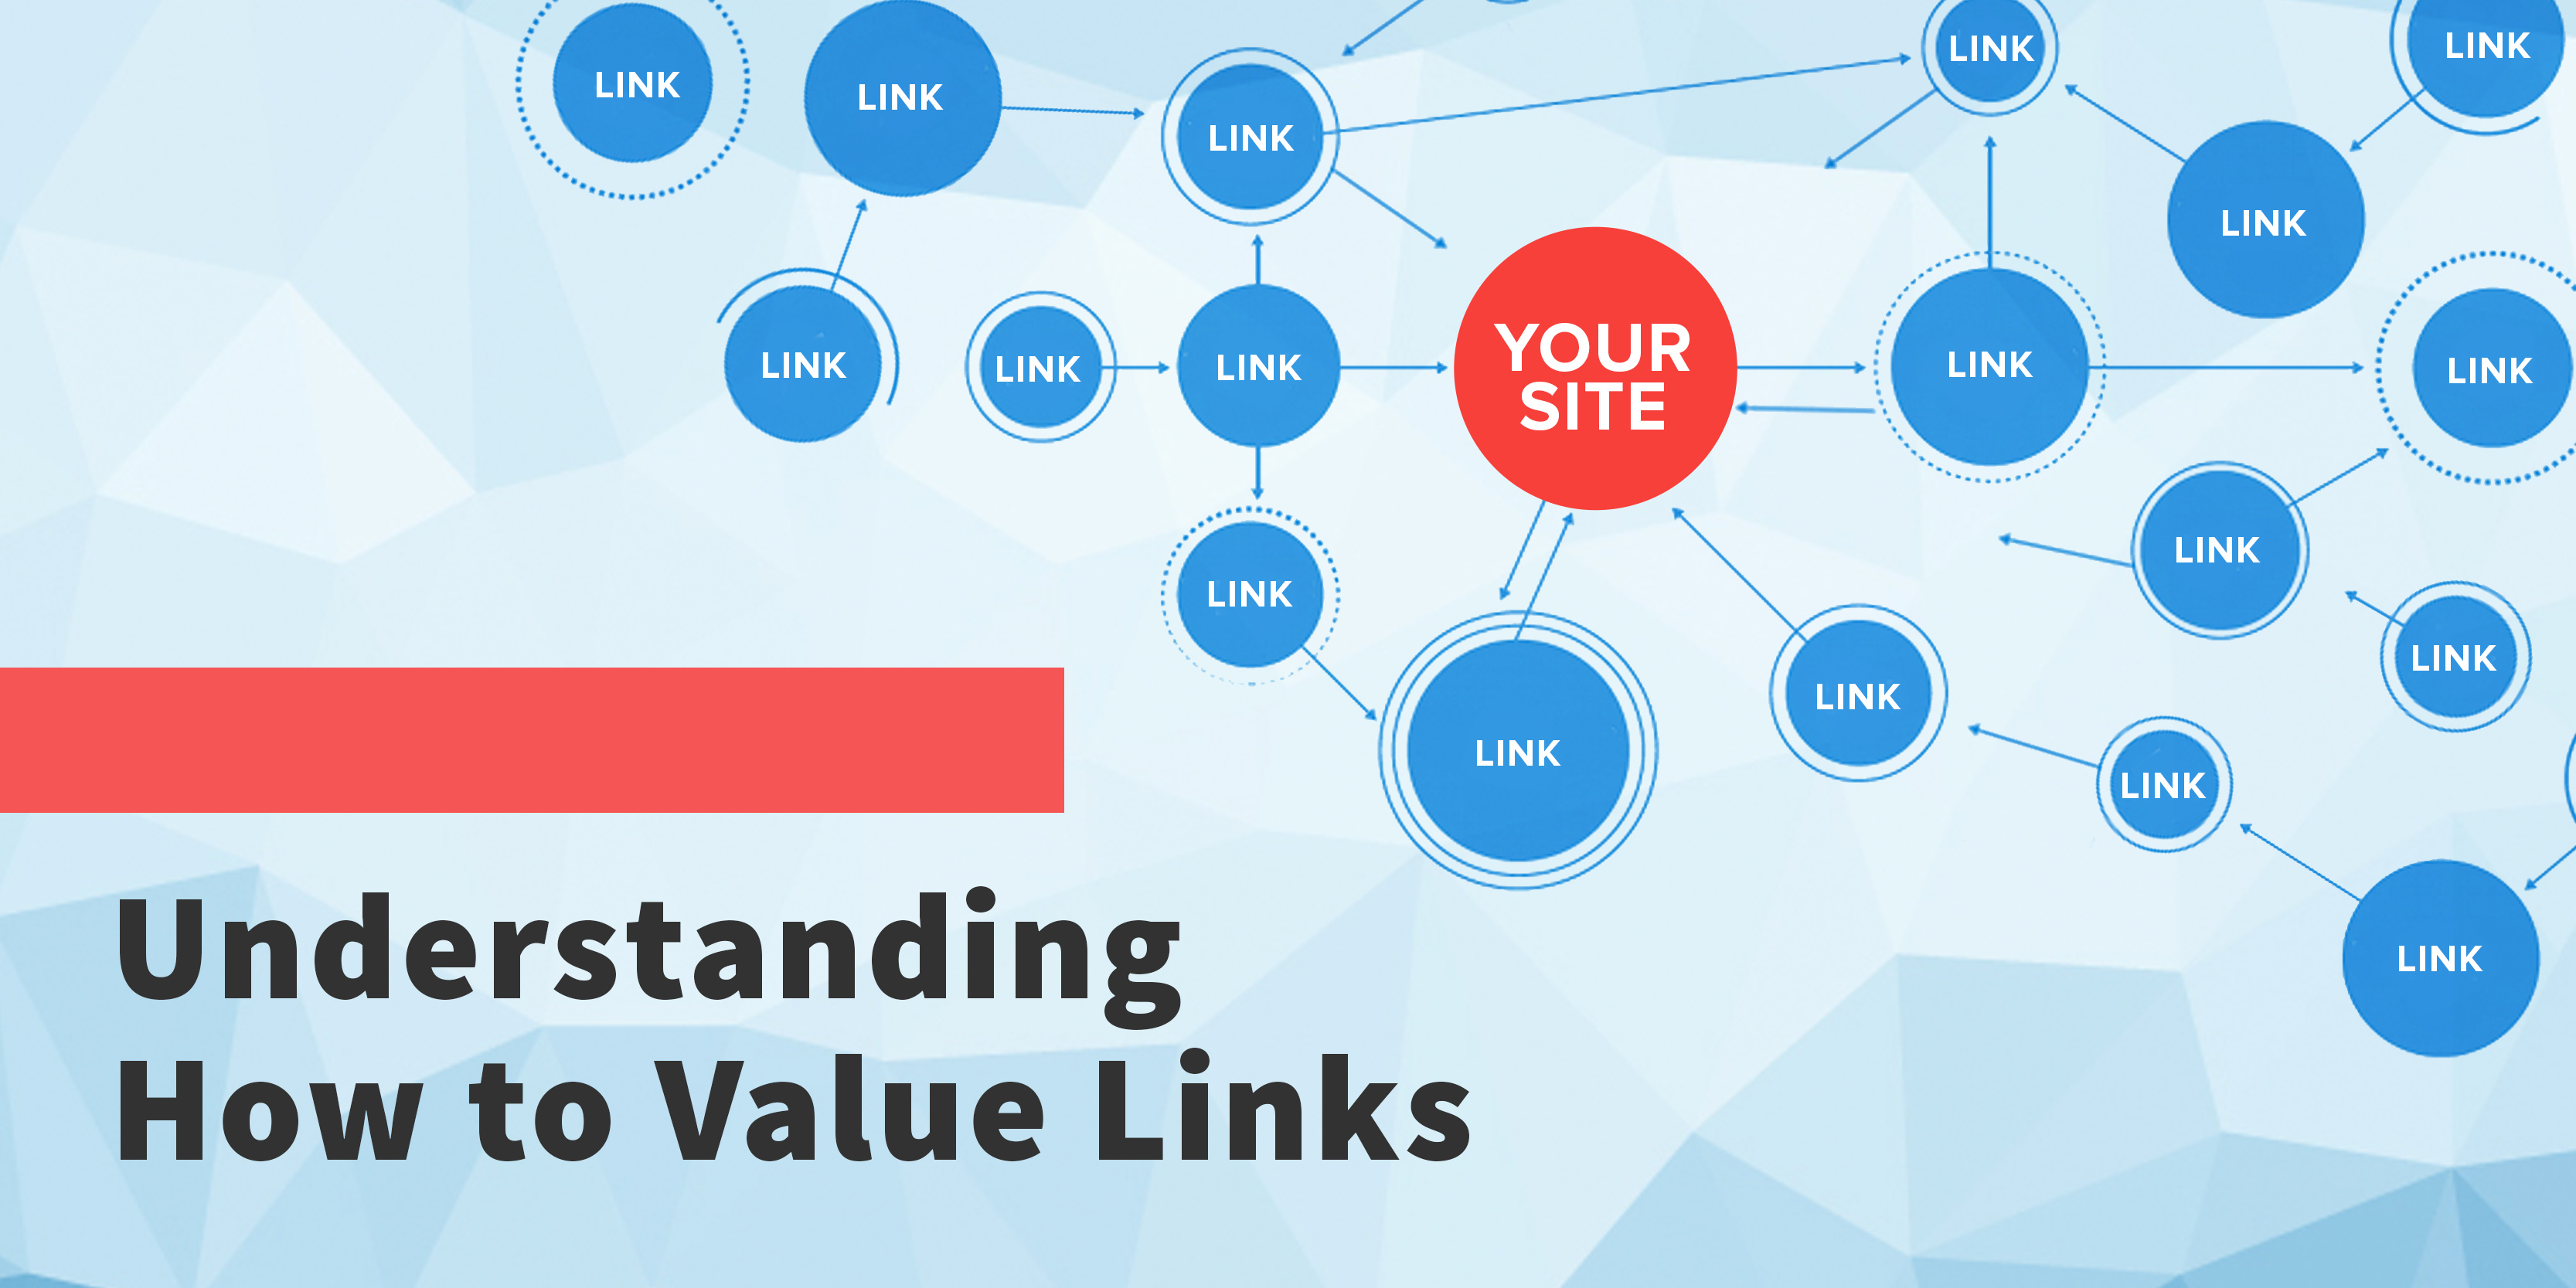 Value of Links